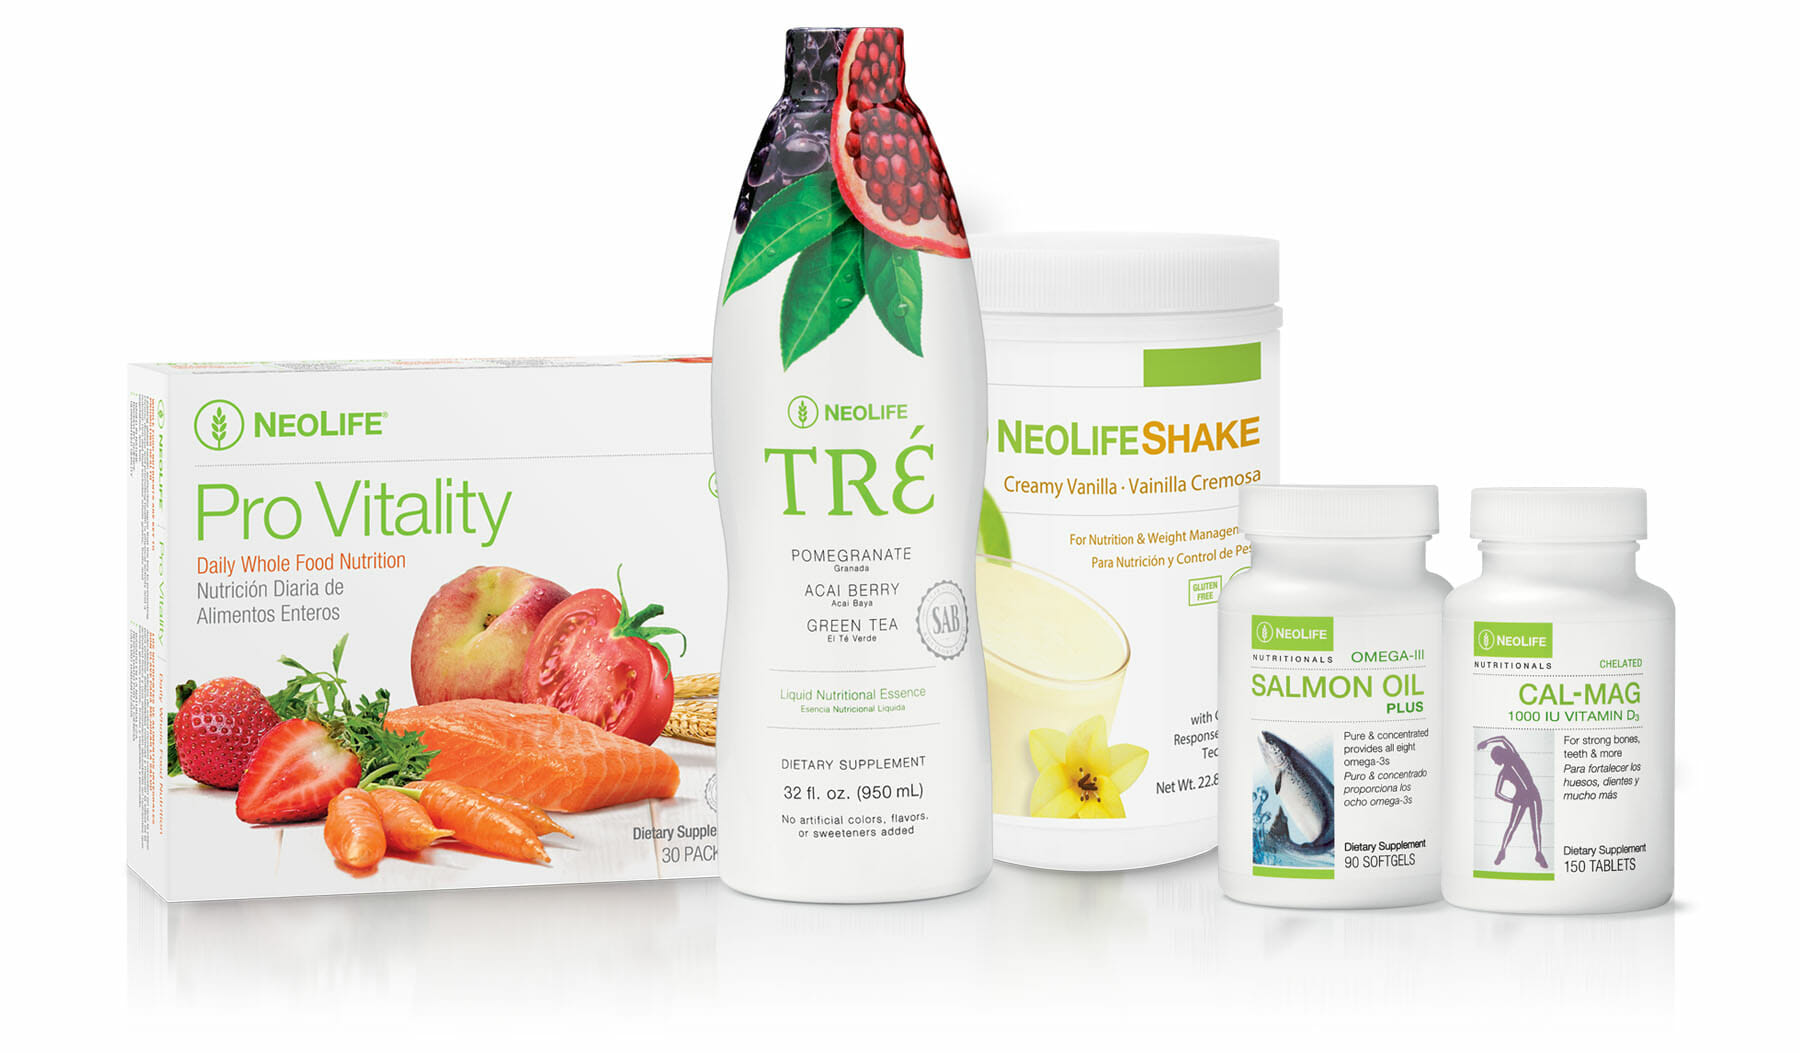 gnld neolife products